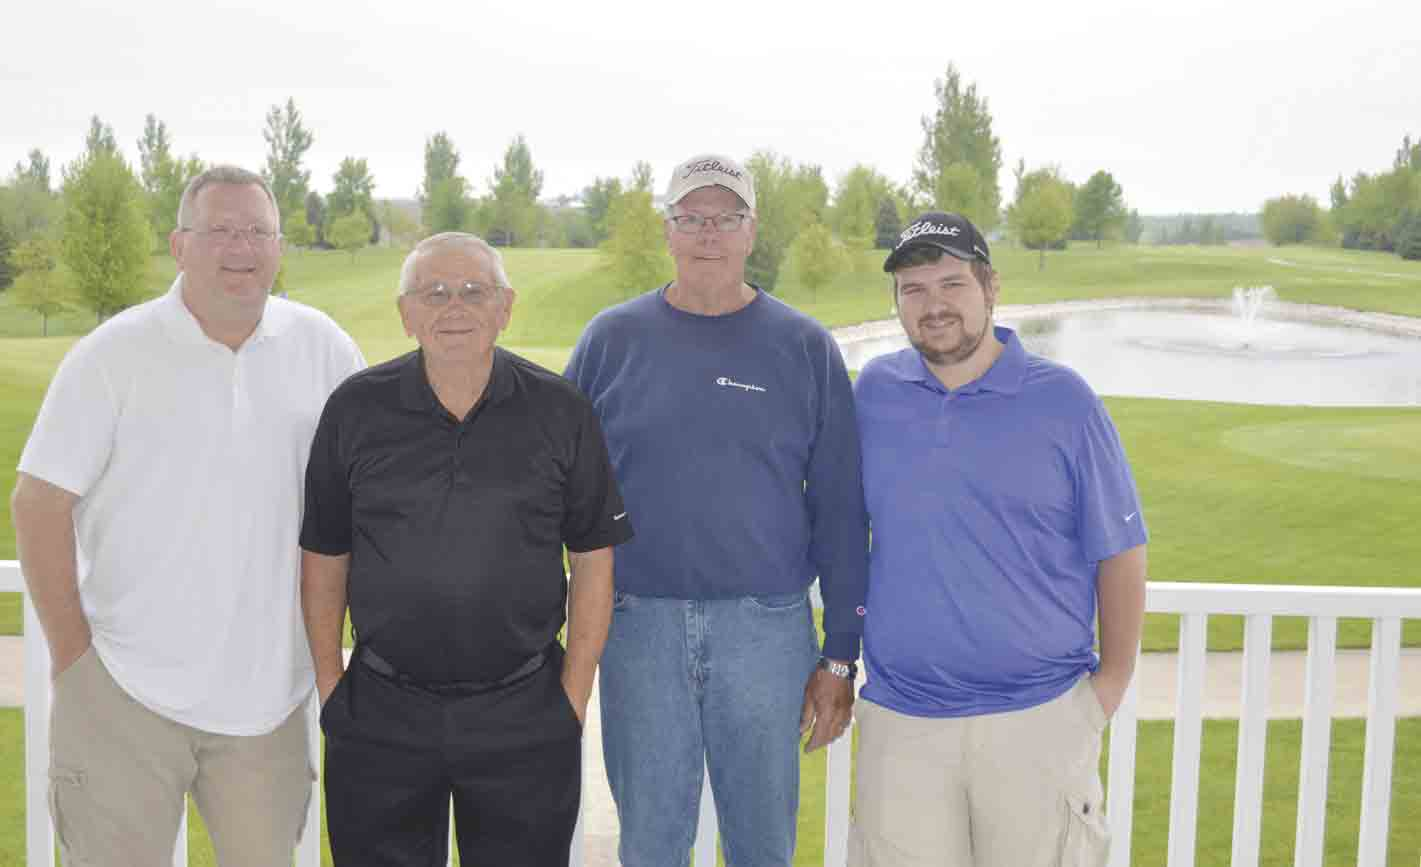 Jim Mathis, course manager; Arlan Paulson, board member; Roger Koenig, board president; and Nathan Winter, employee (l-r) stand on the porch of Silver Springs Golf and Country Club in Ossian. The local golf course will celebrate its 25th anniversary this summer and will celebrate by hosting a...